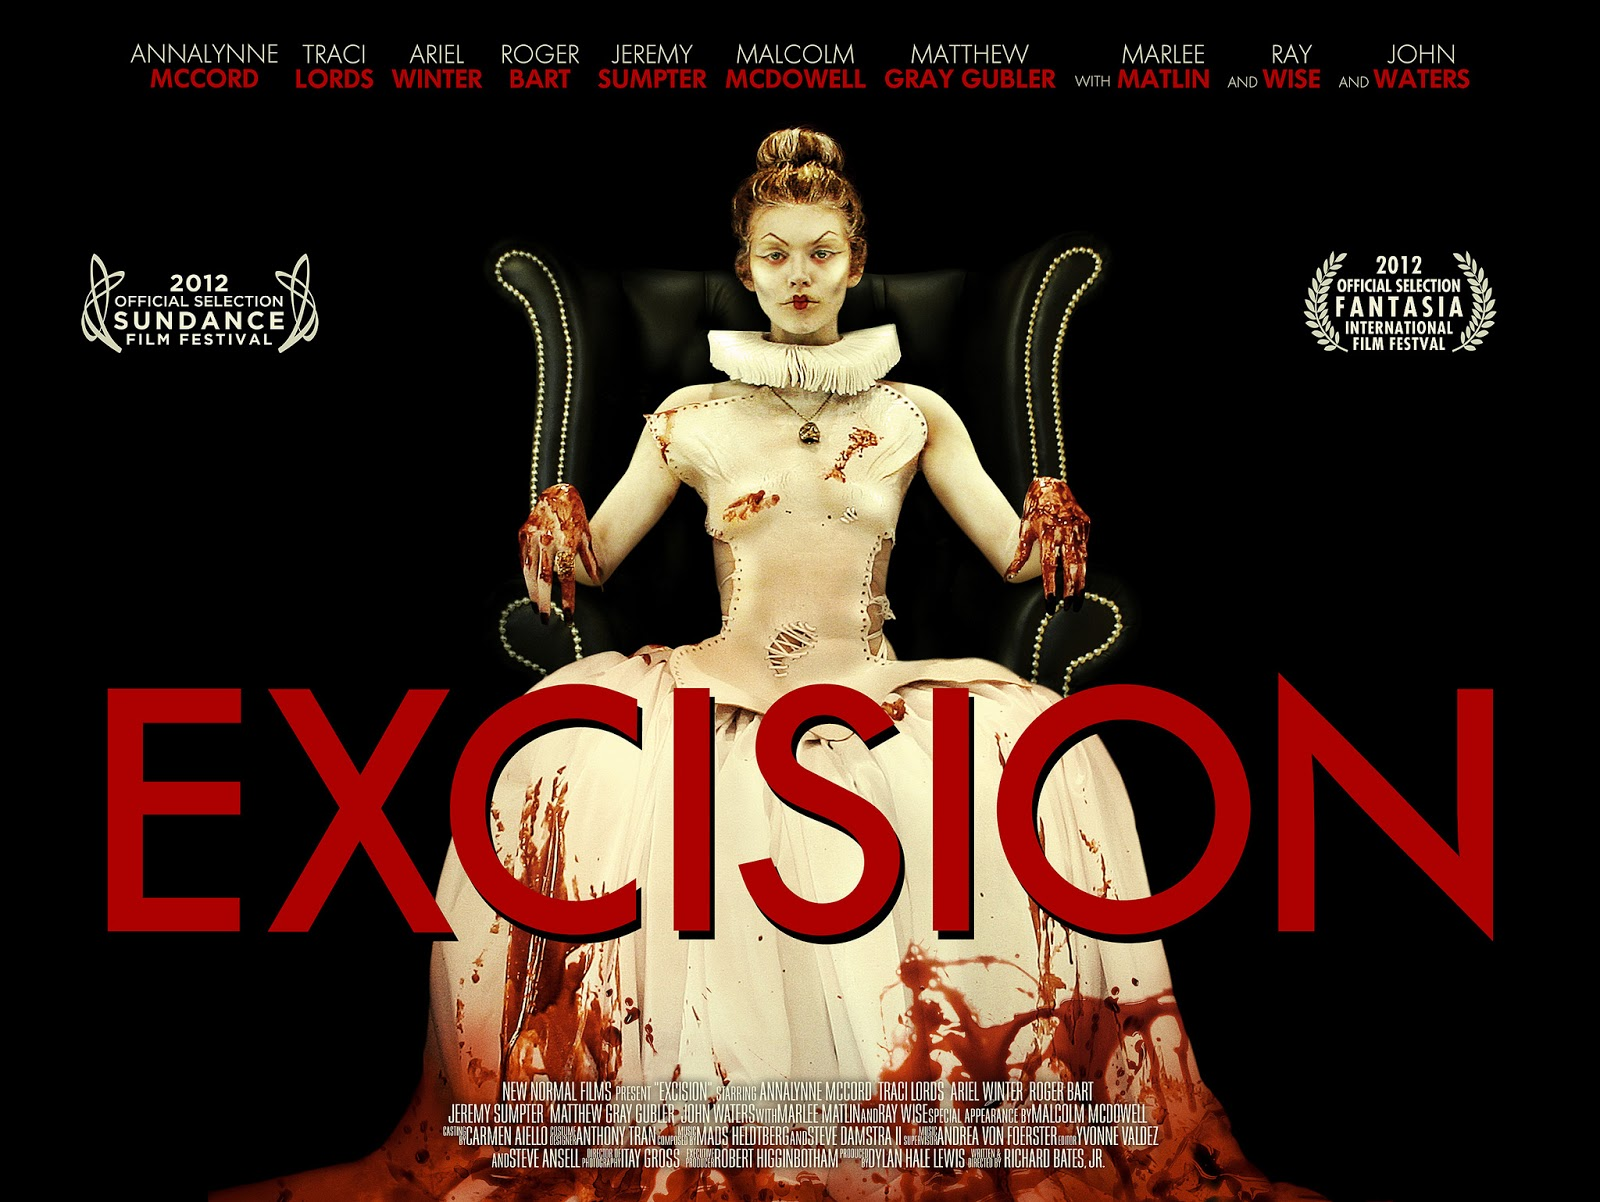 excision-poster.jpg